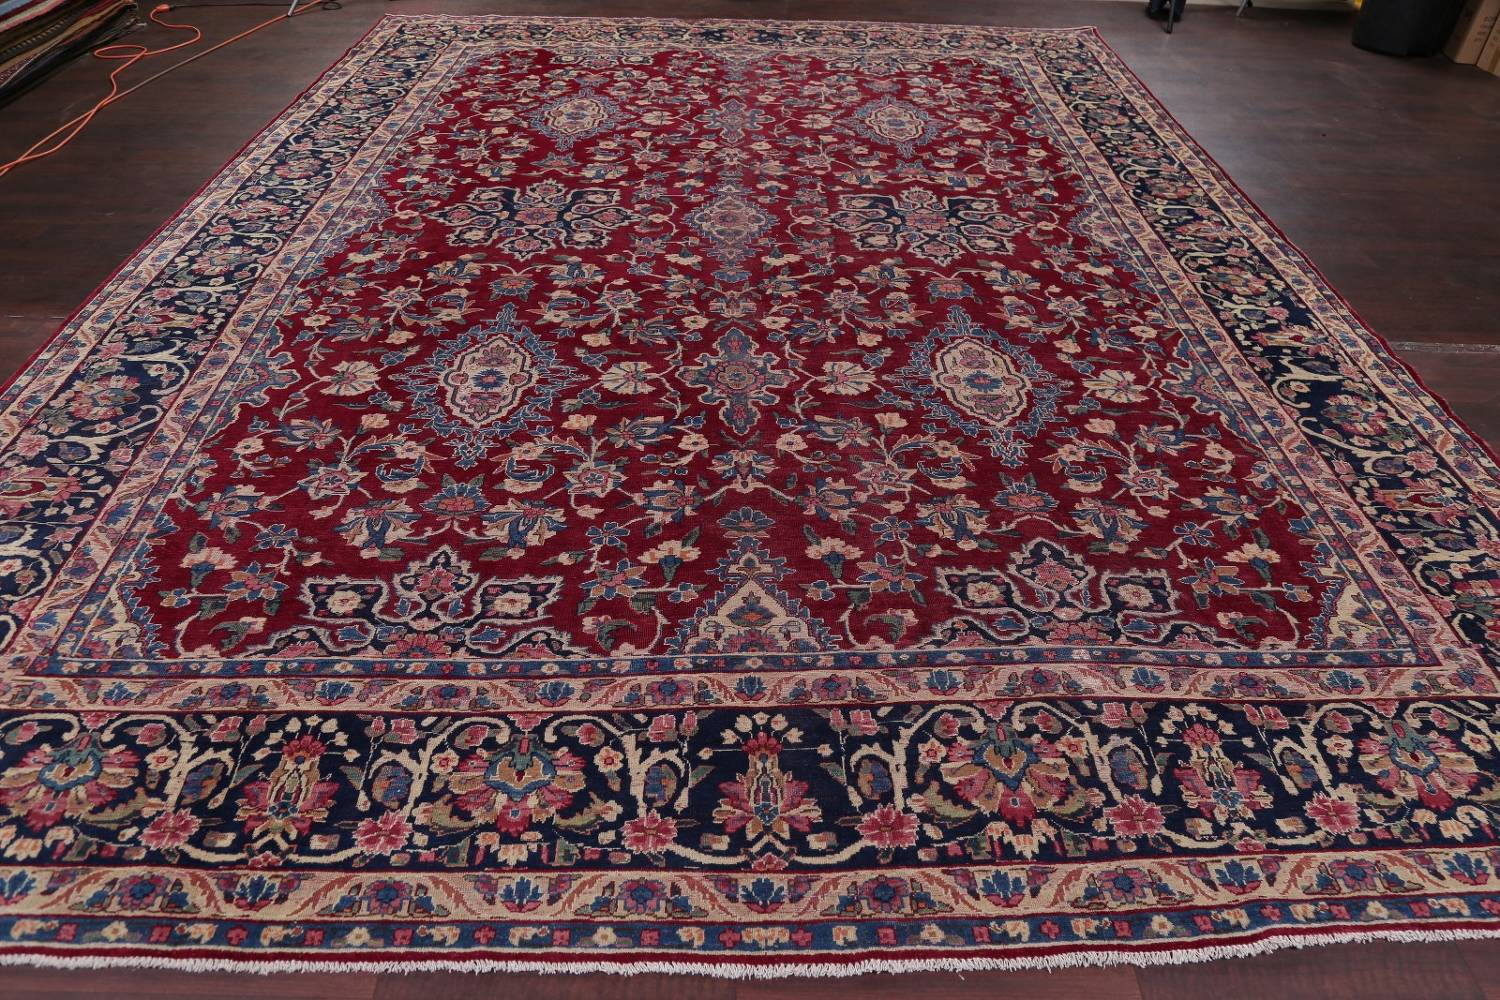 All-Over Floral 11x16 Yazd Persian Area Rug image 18